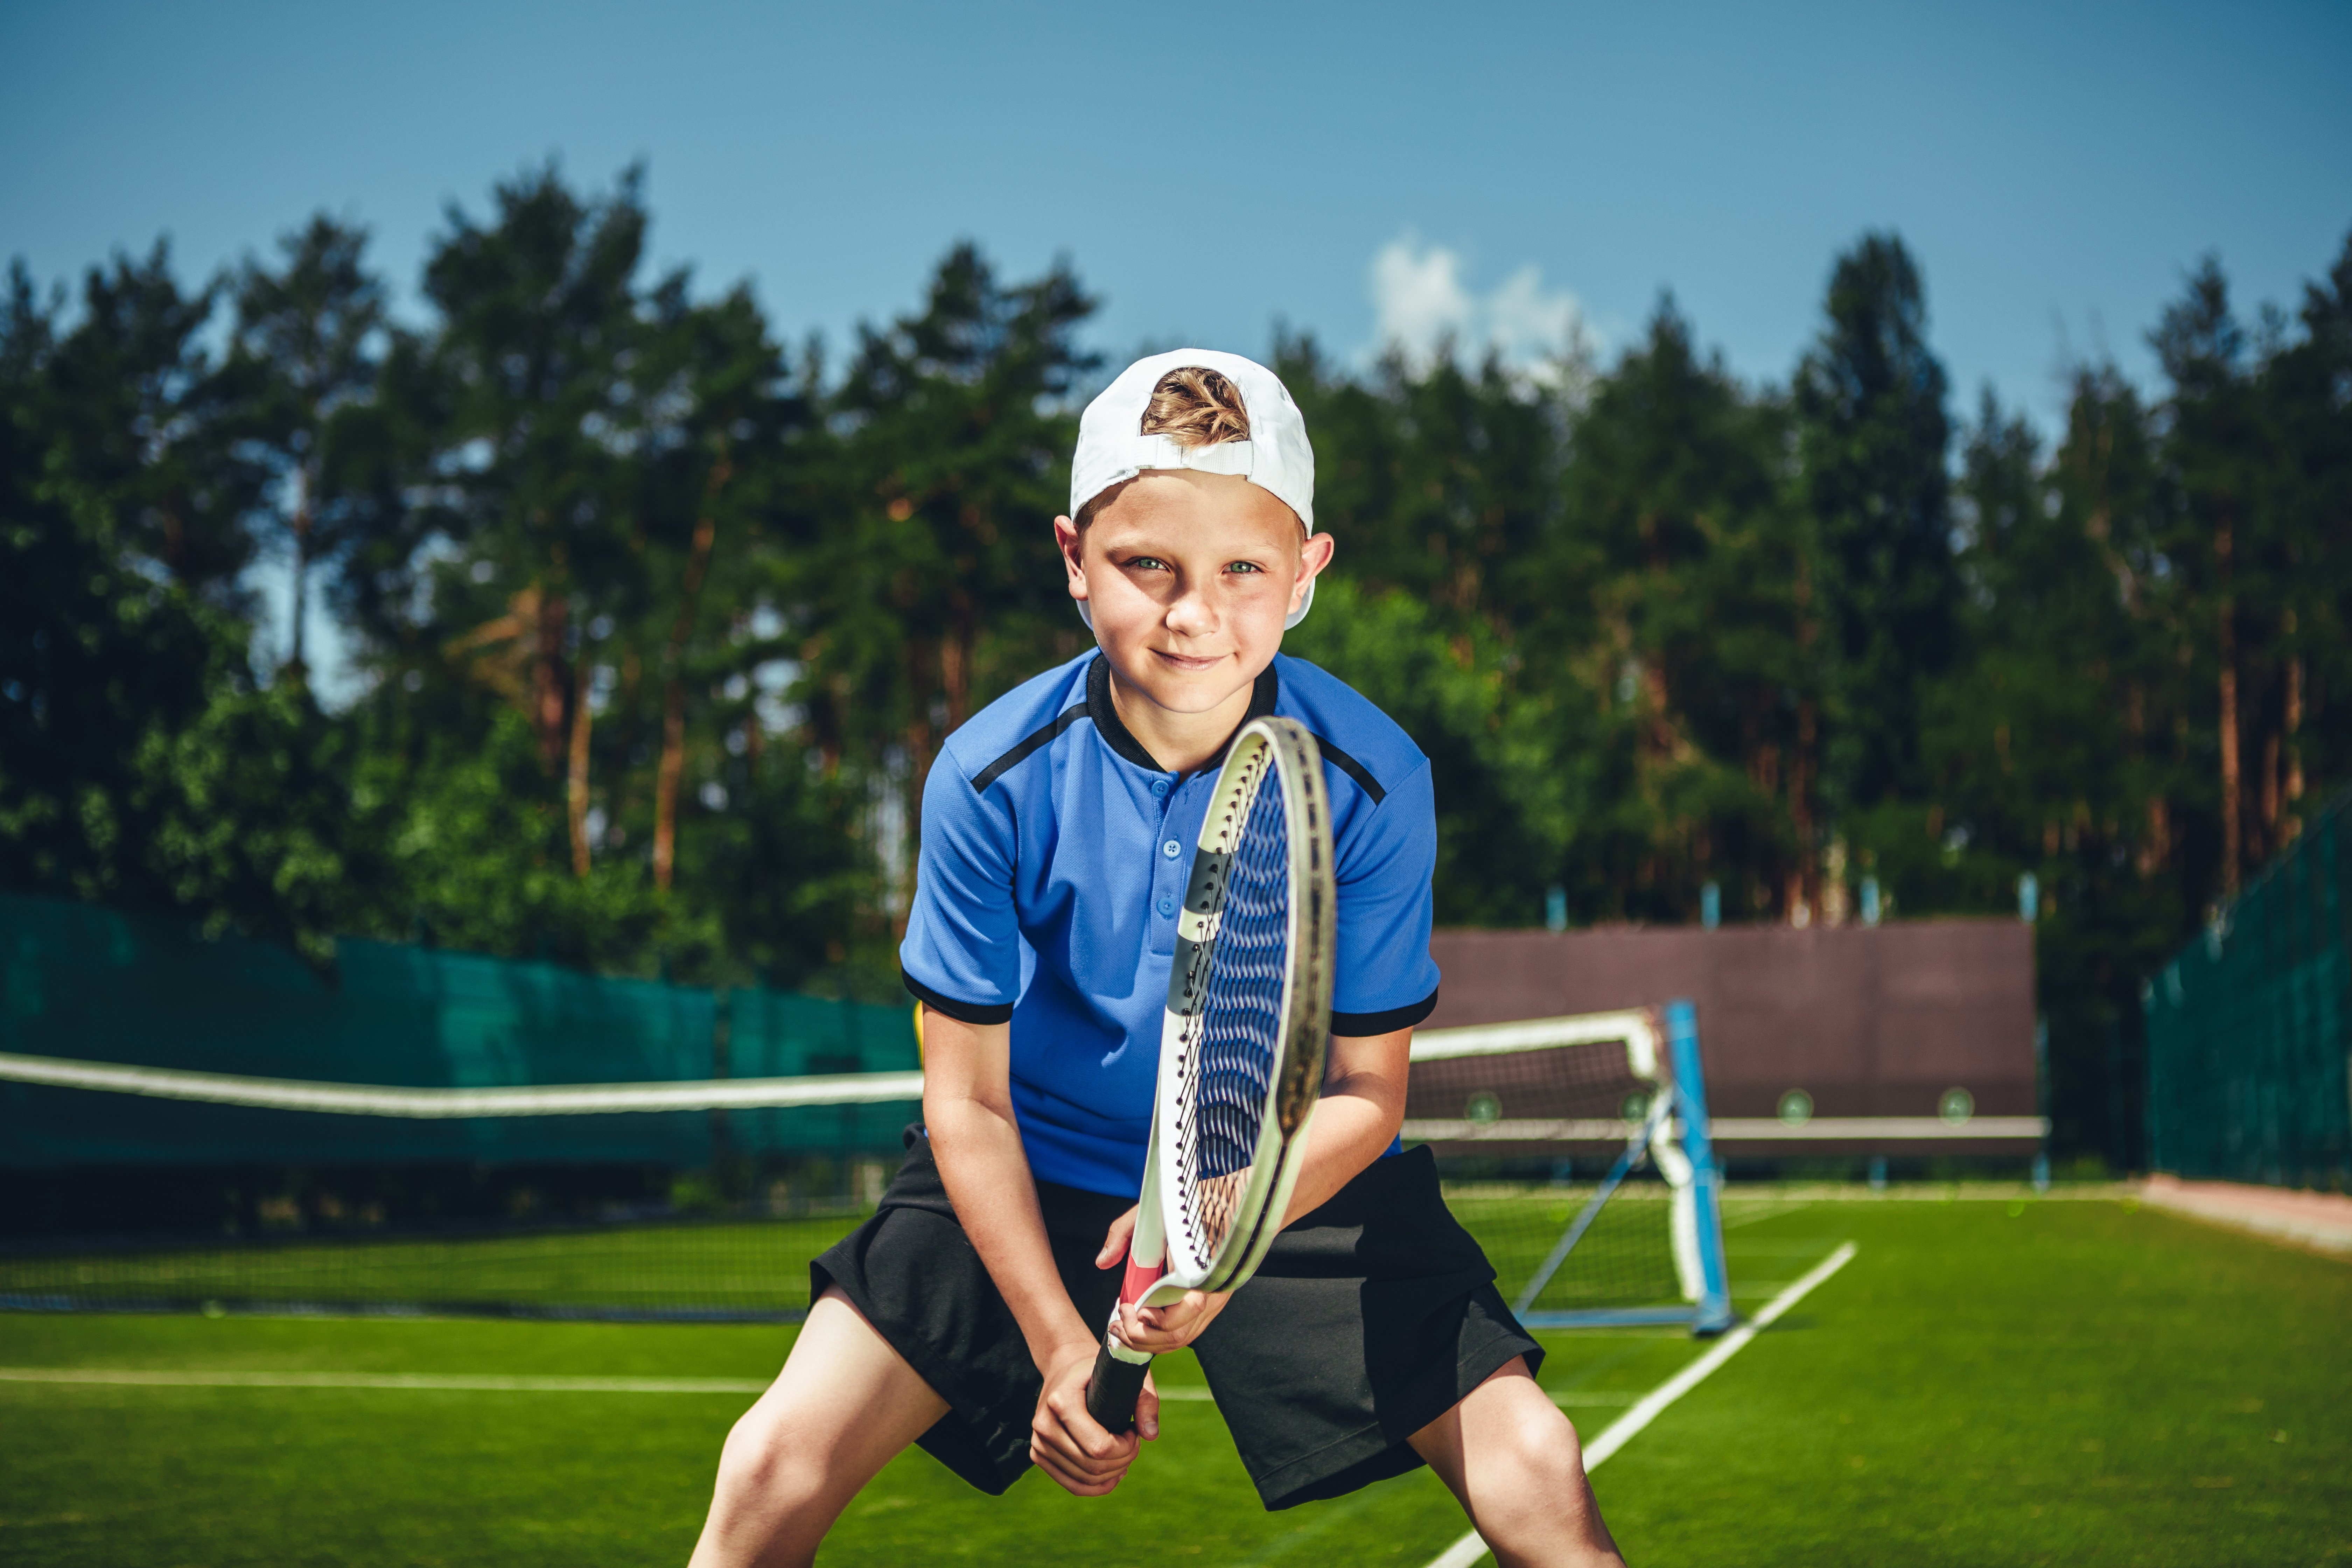 Proud/happy child holding tennis racket on green tennis field